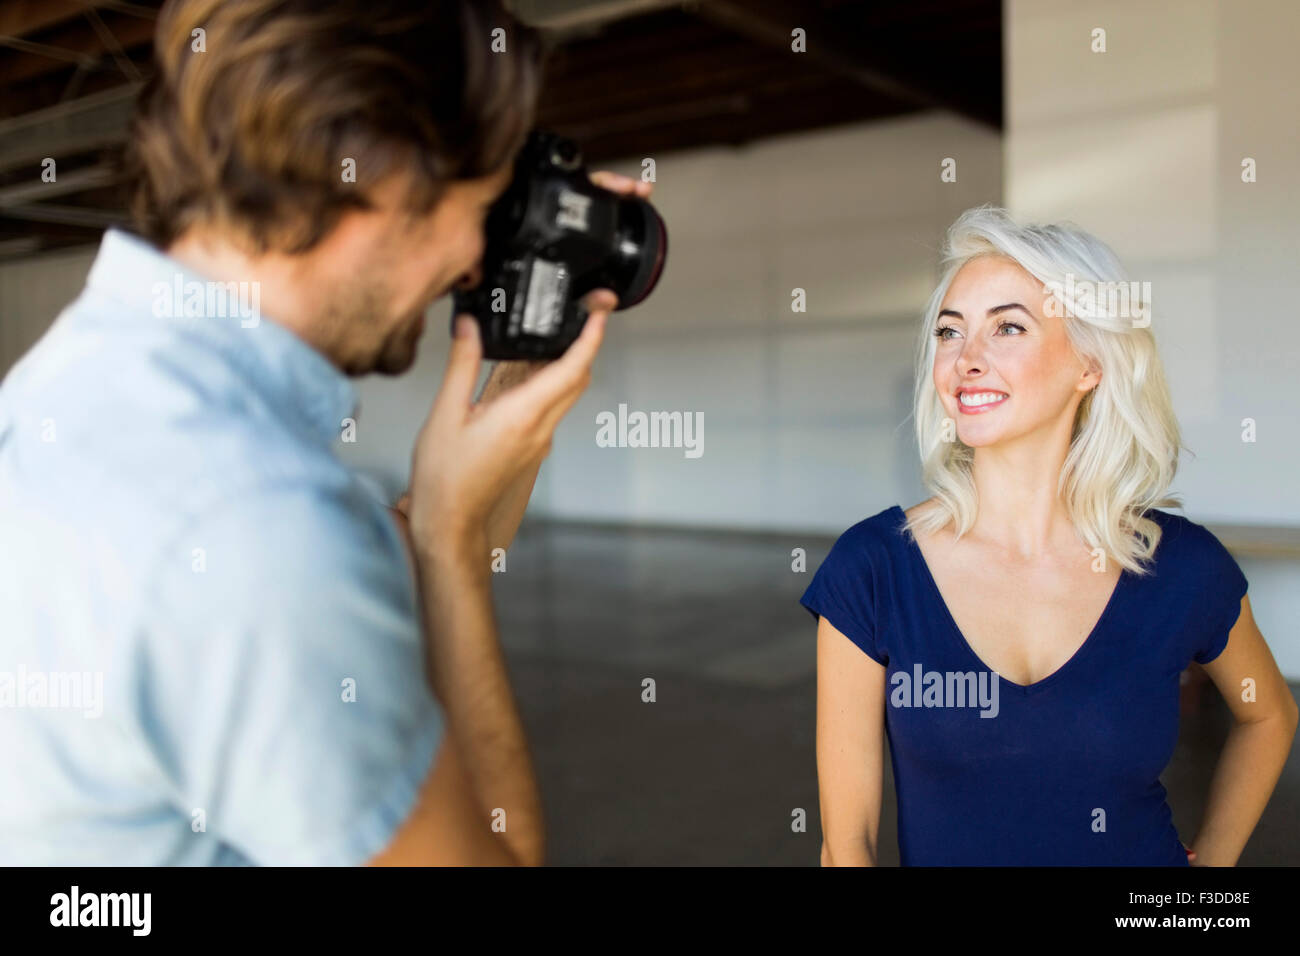 Man photographing woman - Stock Image